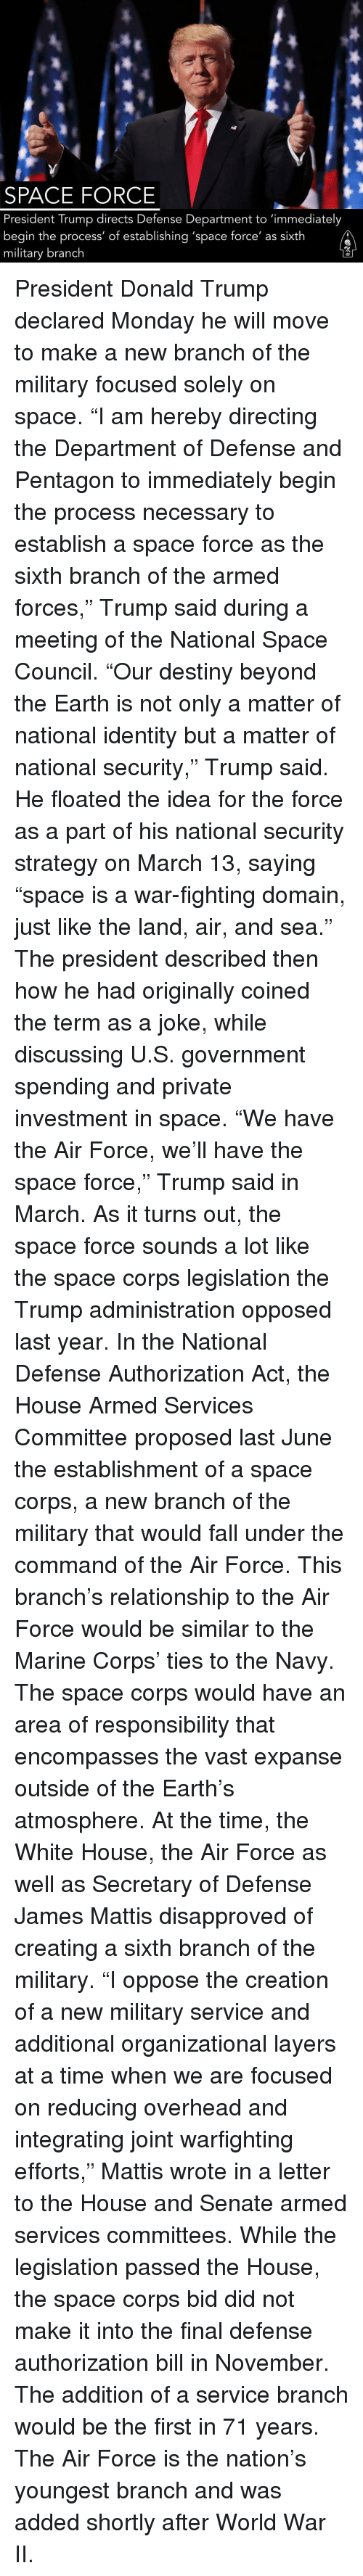 "Mattis: SPACE FORCE  President Trump directs Defense Department to 'immediately  begin the process' of establishing 'space force' as sixth  military branch President Donald Trump declared Monday he will move to make a new branch of the military focused solely on space. ""I am hereby directing the Department of Defense and Pentagon to immediately begin the process necessary to establish a space force as the sixth branch of the armed forces,"" Trump said during a meeting of the National Space Council. ""Our destiny beyond the Earth is not only a matter of national identity but a matter of national security,"" Trump said. He floated the idea for the force as a part of his national security strategy on March 13, saying ""space is a war-fighting domain, just like the land, air, and sea."" The president described then how he had originally coined the term as a joke, while discussing U.S. government spending and private investment in space. ""We have the Air Force, we'll have the space force,"" Trump said in March. As it turns out, the space force sounds a lot like the space corps legislation the Trump administration opposed last year. In the National Defense Authorization Act, the House Armed Services Committee proposed last June the establishment of a space corps, a new branch of the military that would fall under the command of the Air Force. This branch's relationship to the Air Force would be similar to the Marine Corps' ties to the Navy. The space corps would have an area of responsibility that encompasses the vast expanse outside of the Earth's atmosphere. At the time, the White House, the Air Force as well as Secretary of Defense James Mattis disapproved of creating a sixth branch of the military. ""I oppose the creation of a new military service and additional organizational layers at a time when we are focused on reducing overhead and integrating joint warfighting efforts,"" Mattis wrote in a letter to the House and Senate armed services committees. While the legislation passed the House, the space corps bid did not make it into the final defense authorization bill in November. The addition of a service branch would be the first in 71 years. The Air Force is the nation's youngest branch and was added shortly after World War II."